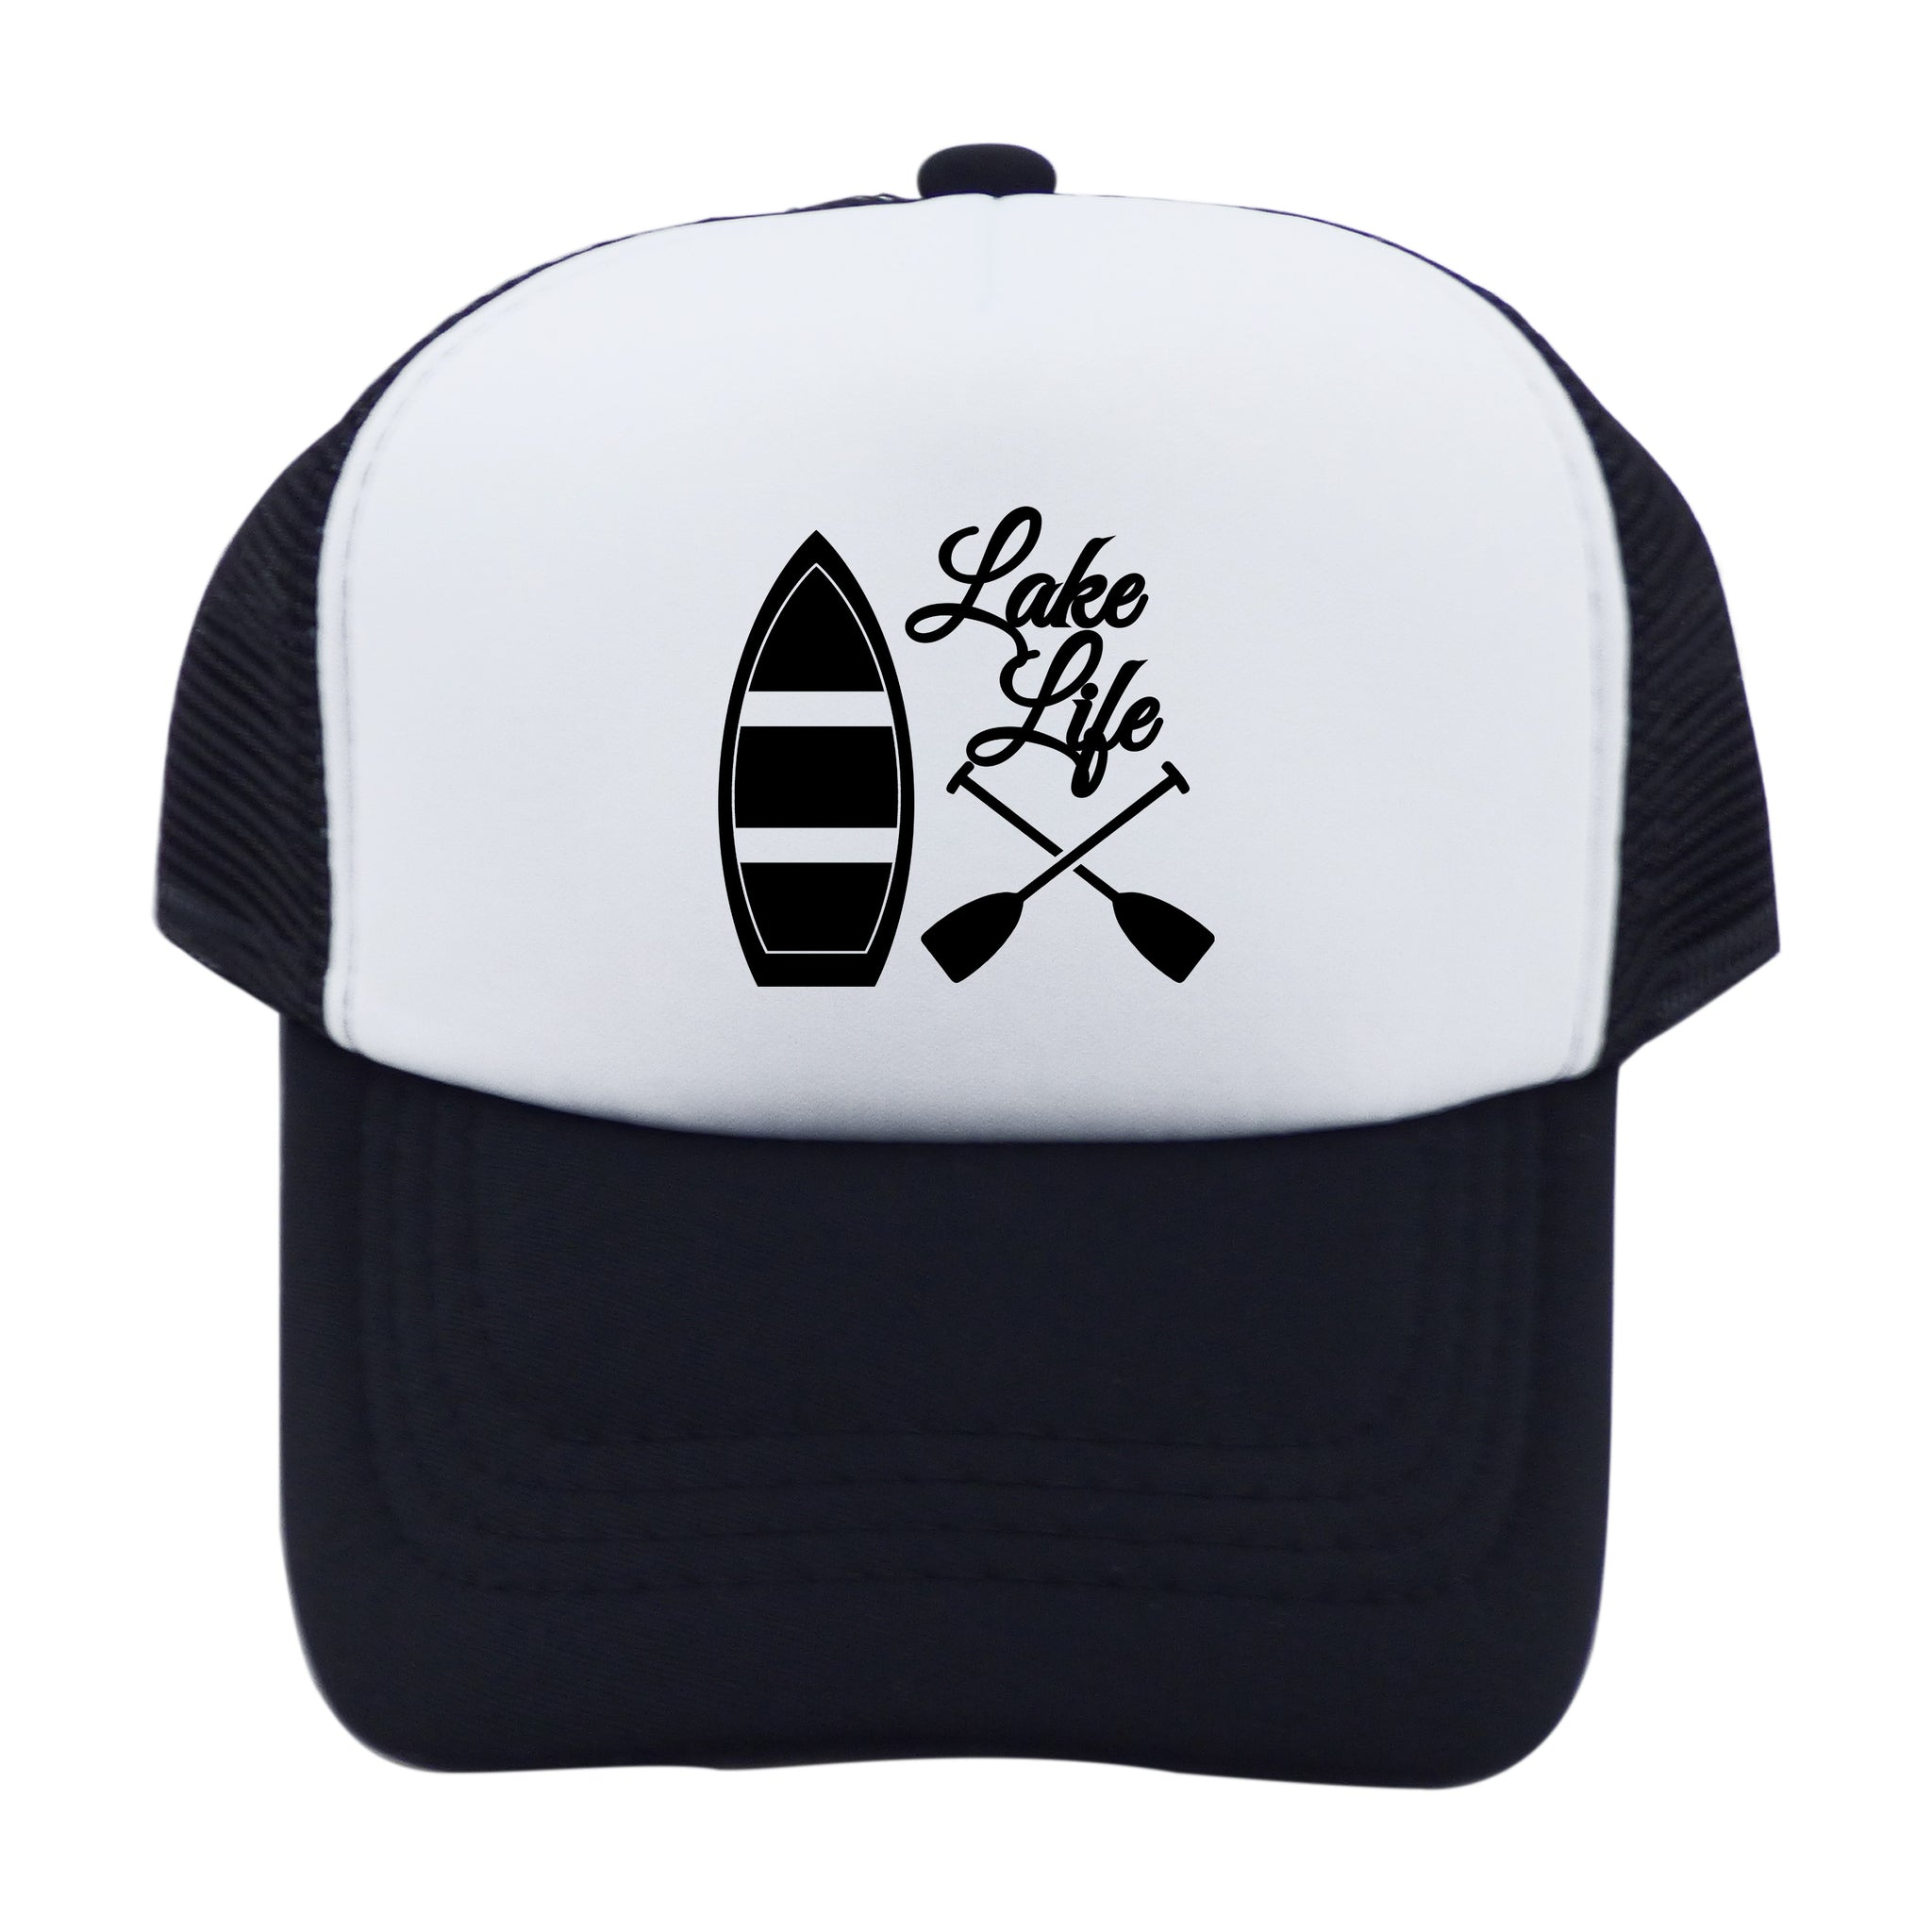 Lake Life Trucker Wholesale